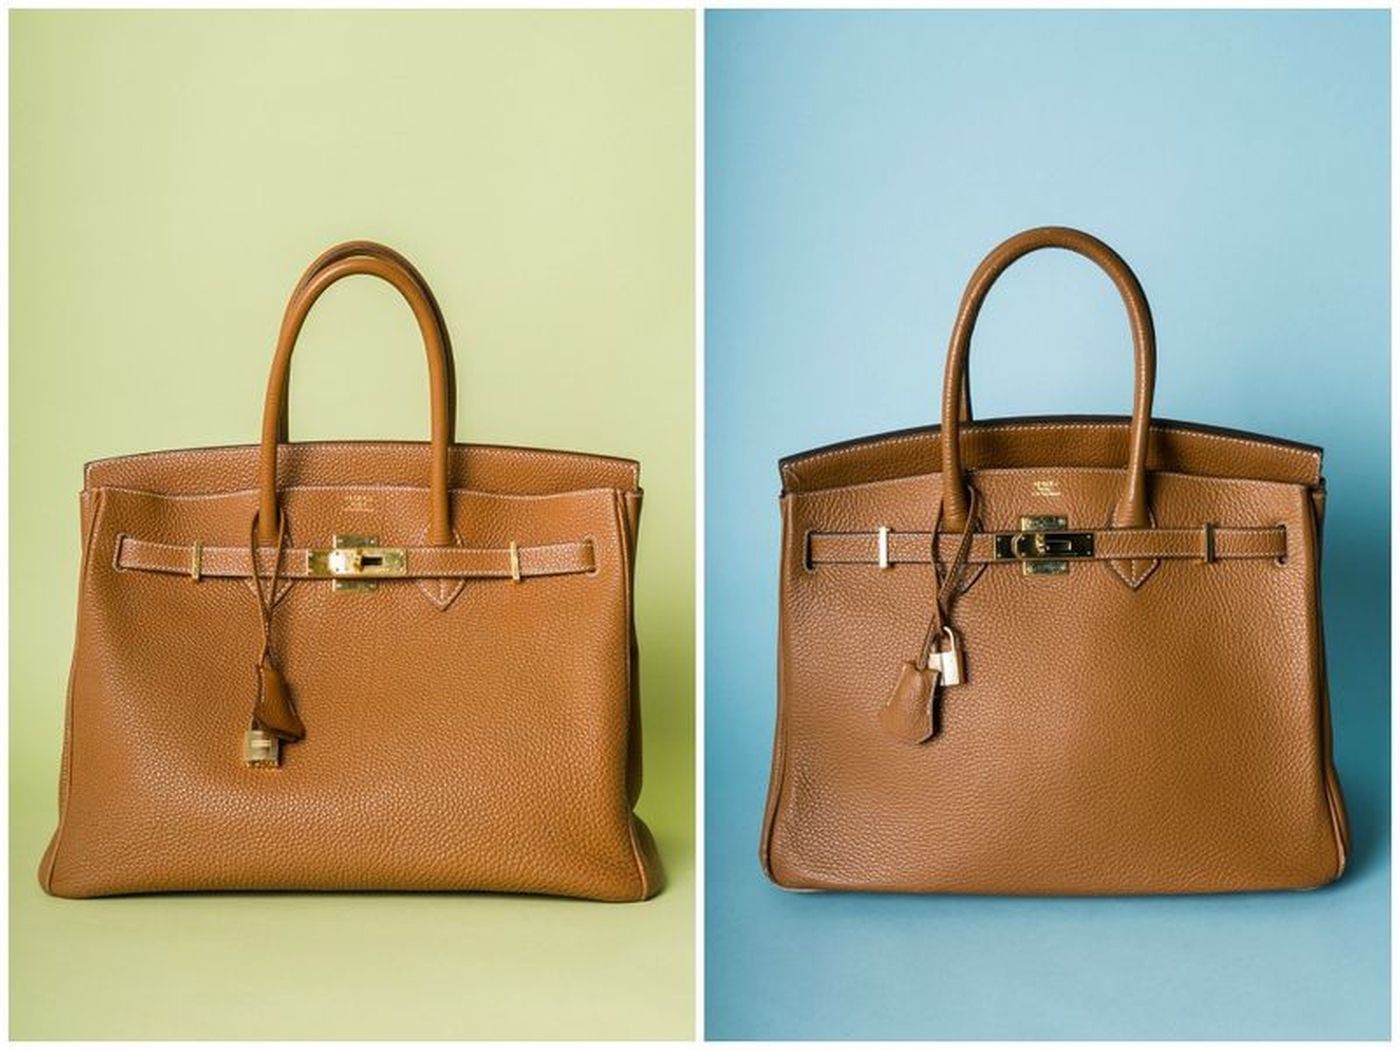 10e0fbb98051 Here s How to Spot the Difference Between Real and Fake Designer Bags -  Racked